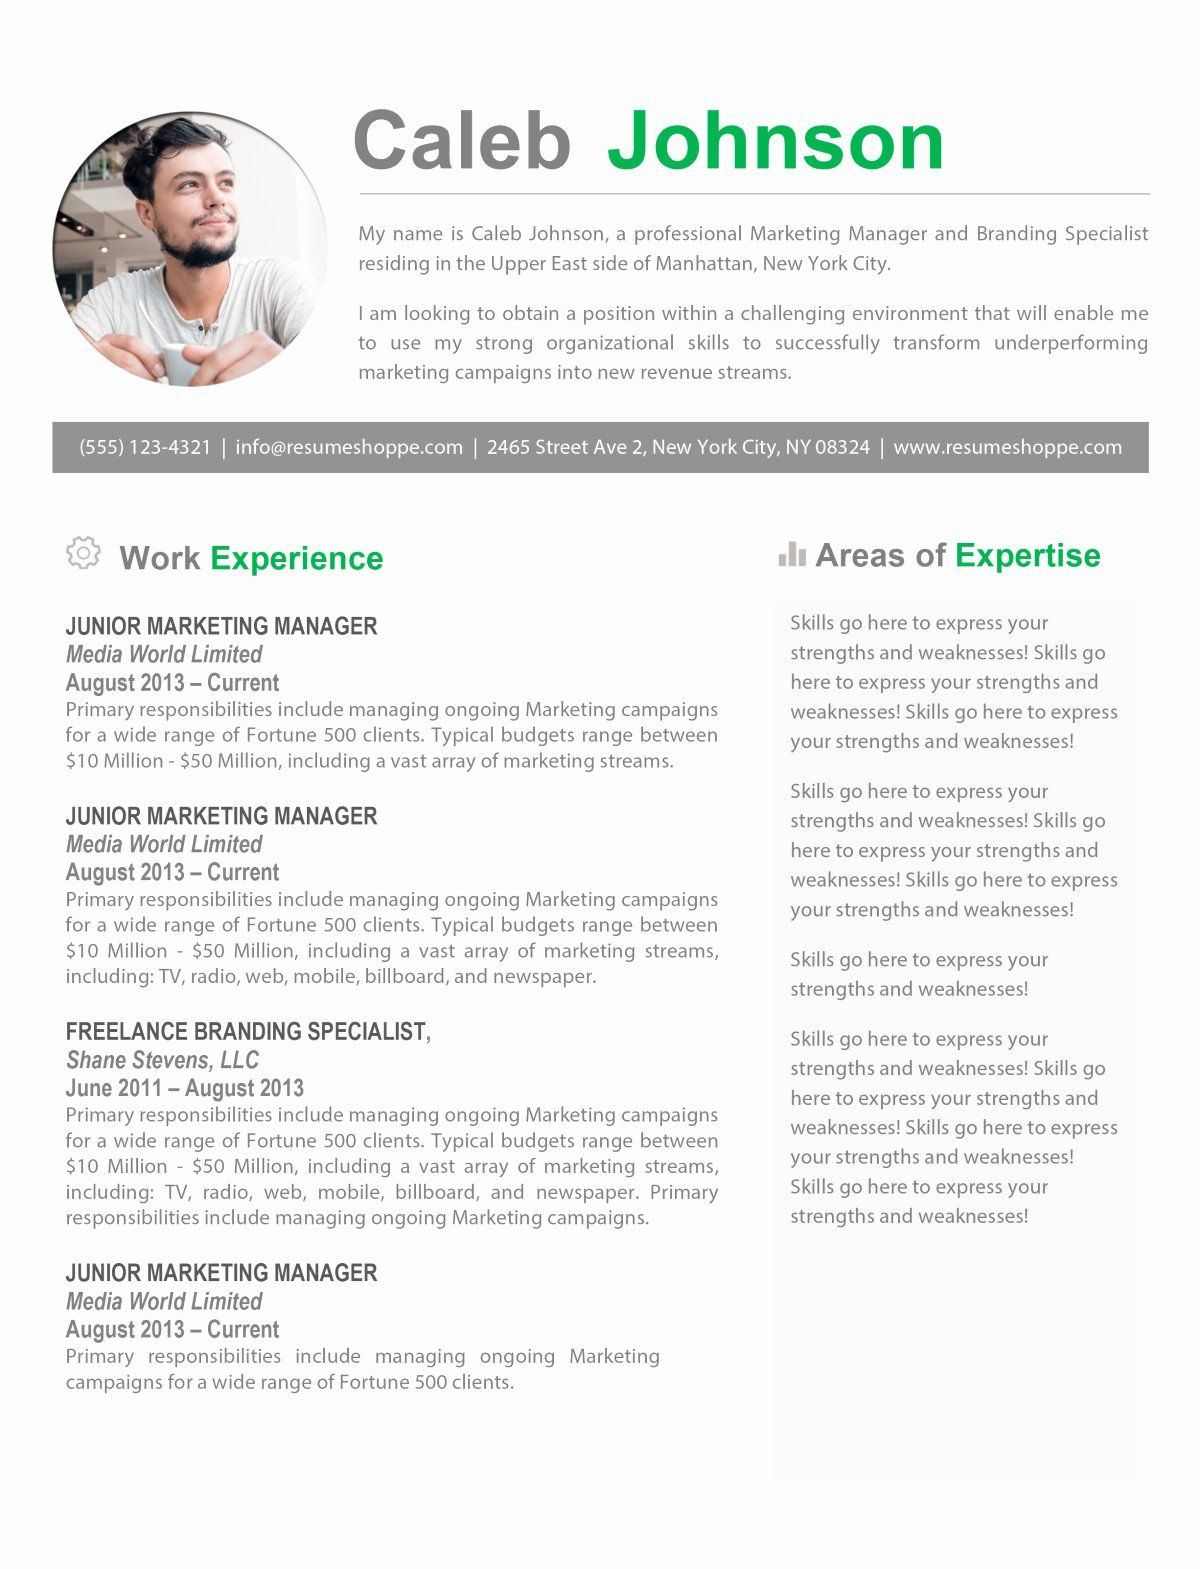 40 Free Resume Templates for Mac in 2020 Resume